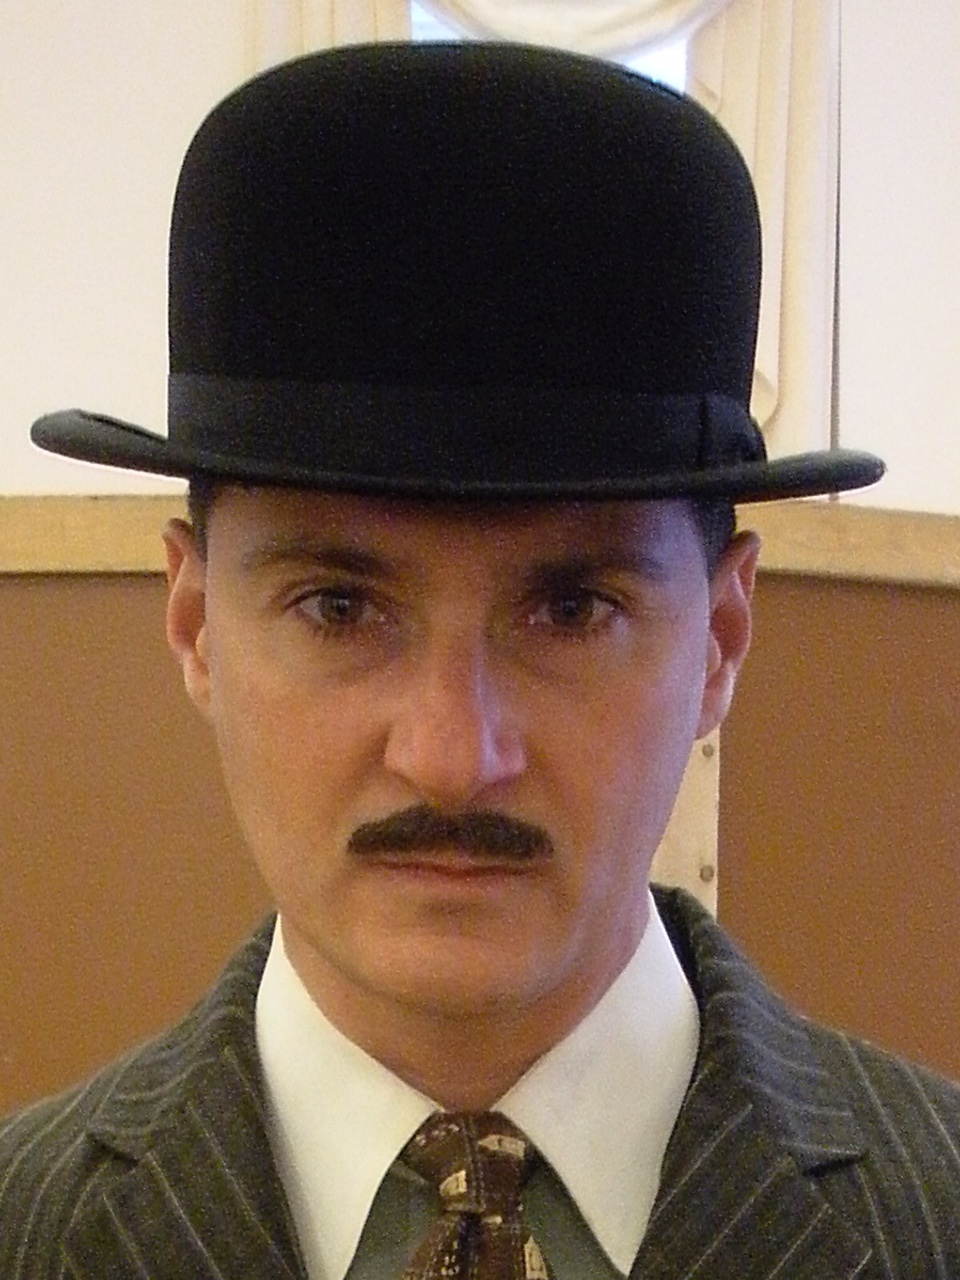 Johnny head shot from Boardwalk Empire